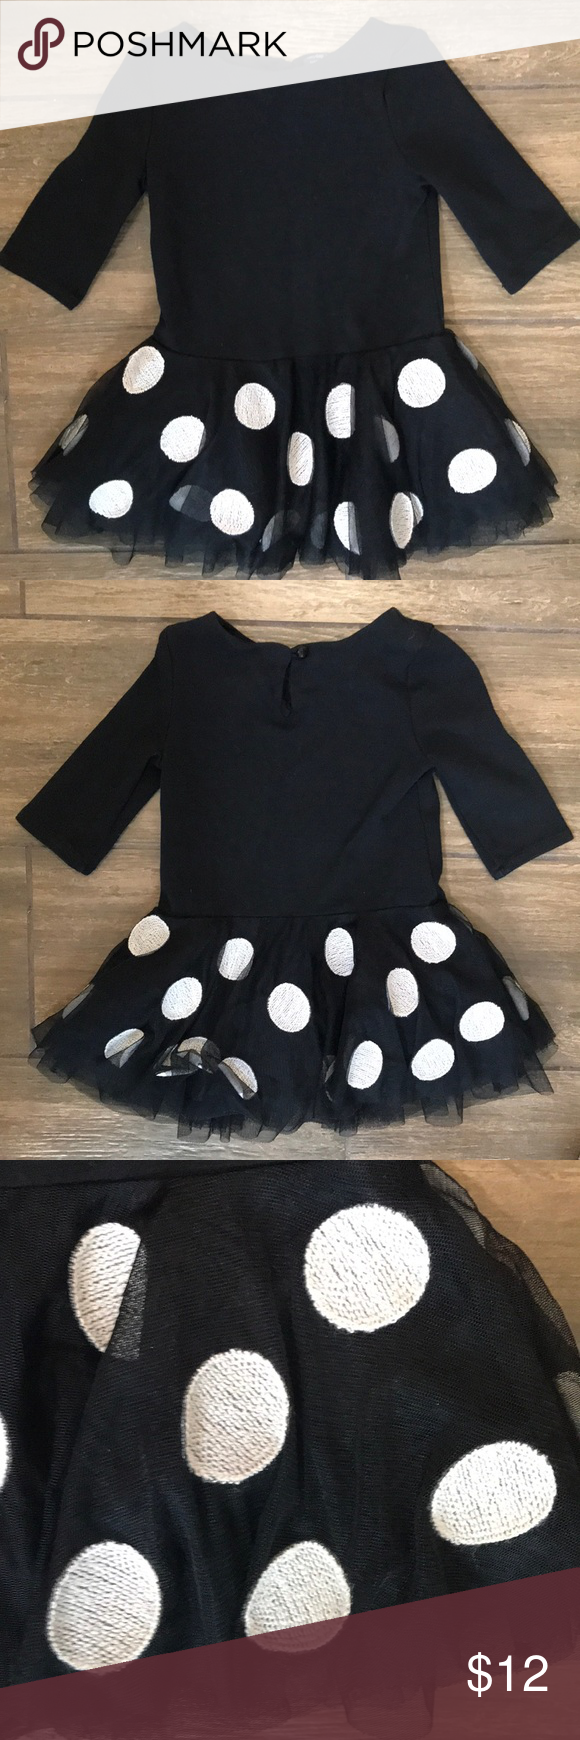 Gap Black White Tulle Polkadotted Dress In 2t White Tulle Clothes Design Gap Dress [ 1740 x 580 Pixel ]